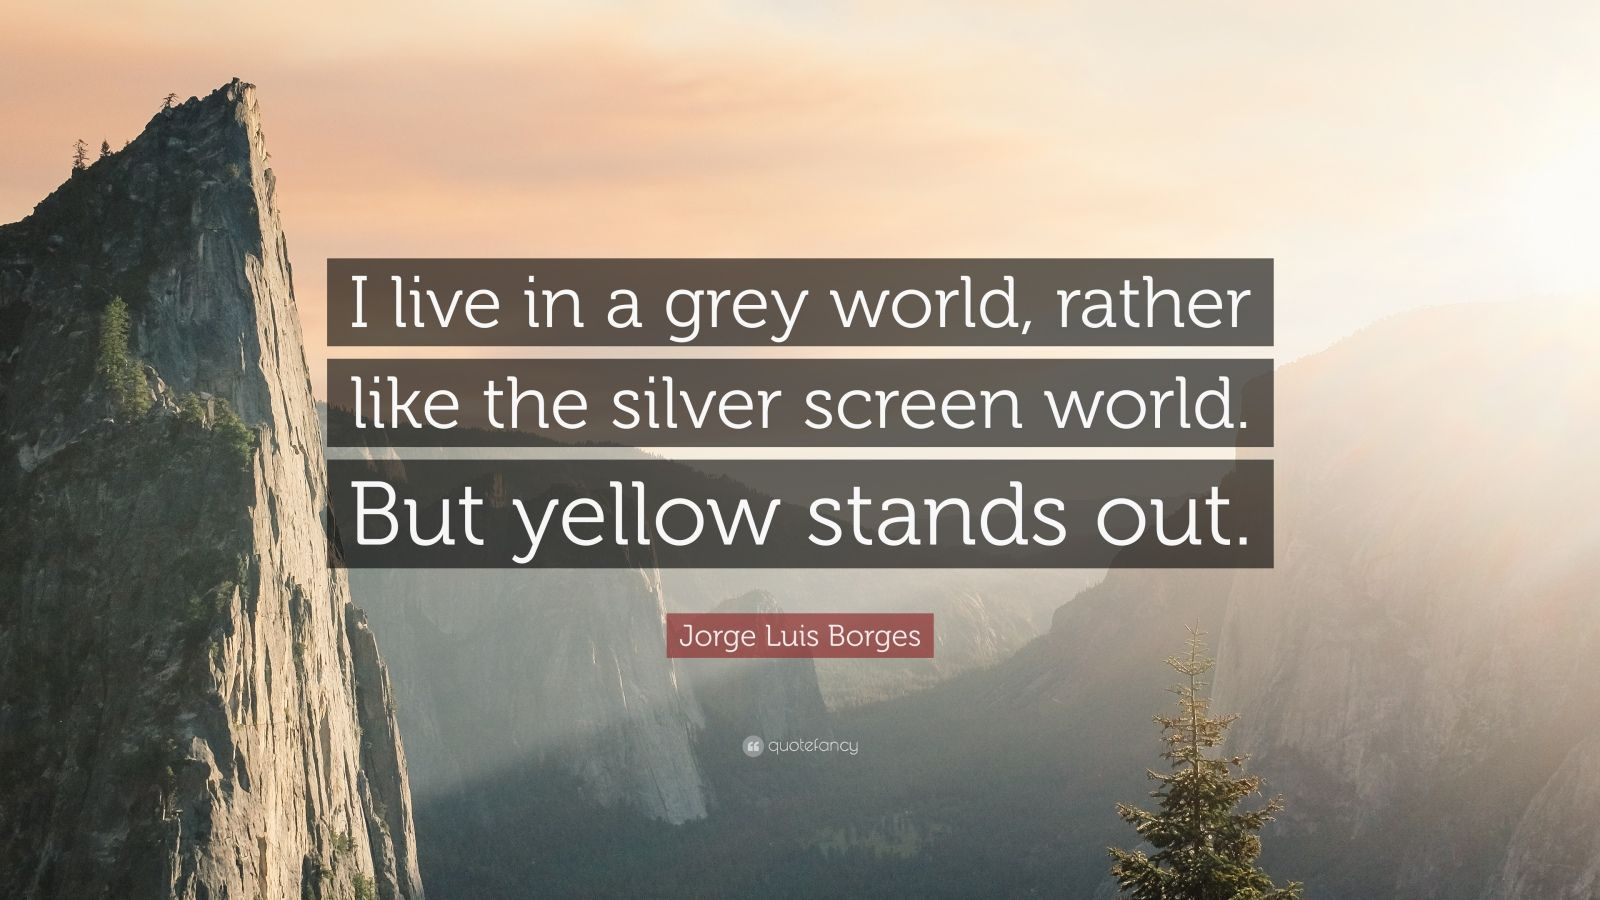 """Jorge Luis Borges Quote: """"I live in a grey world, rather like the silver screen world. But yellow stands out."""""""